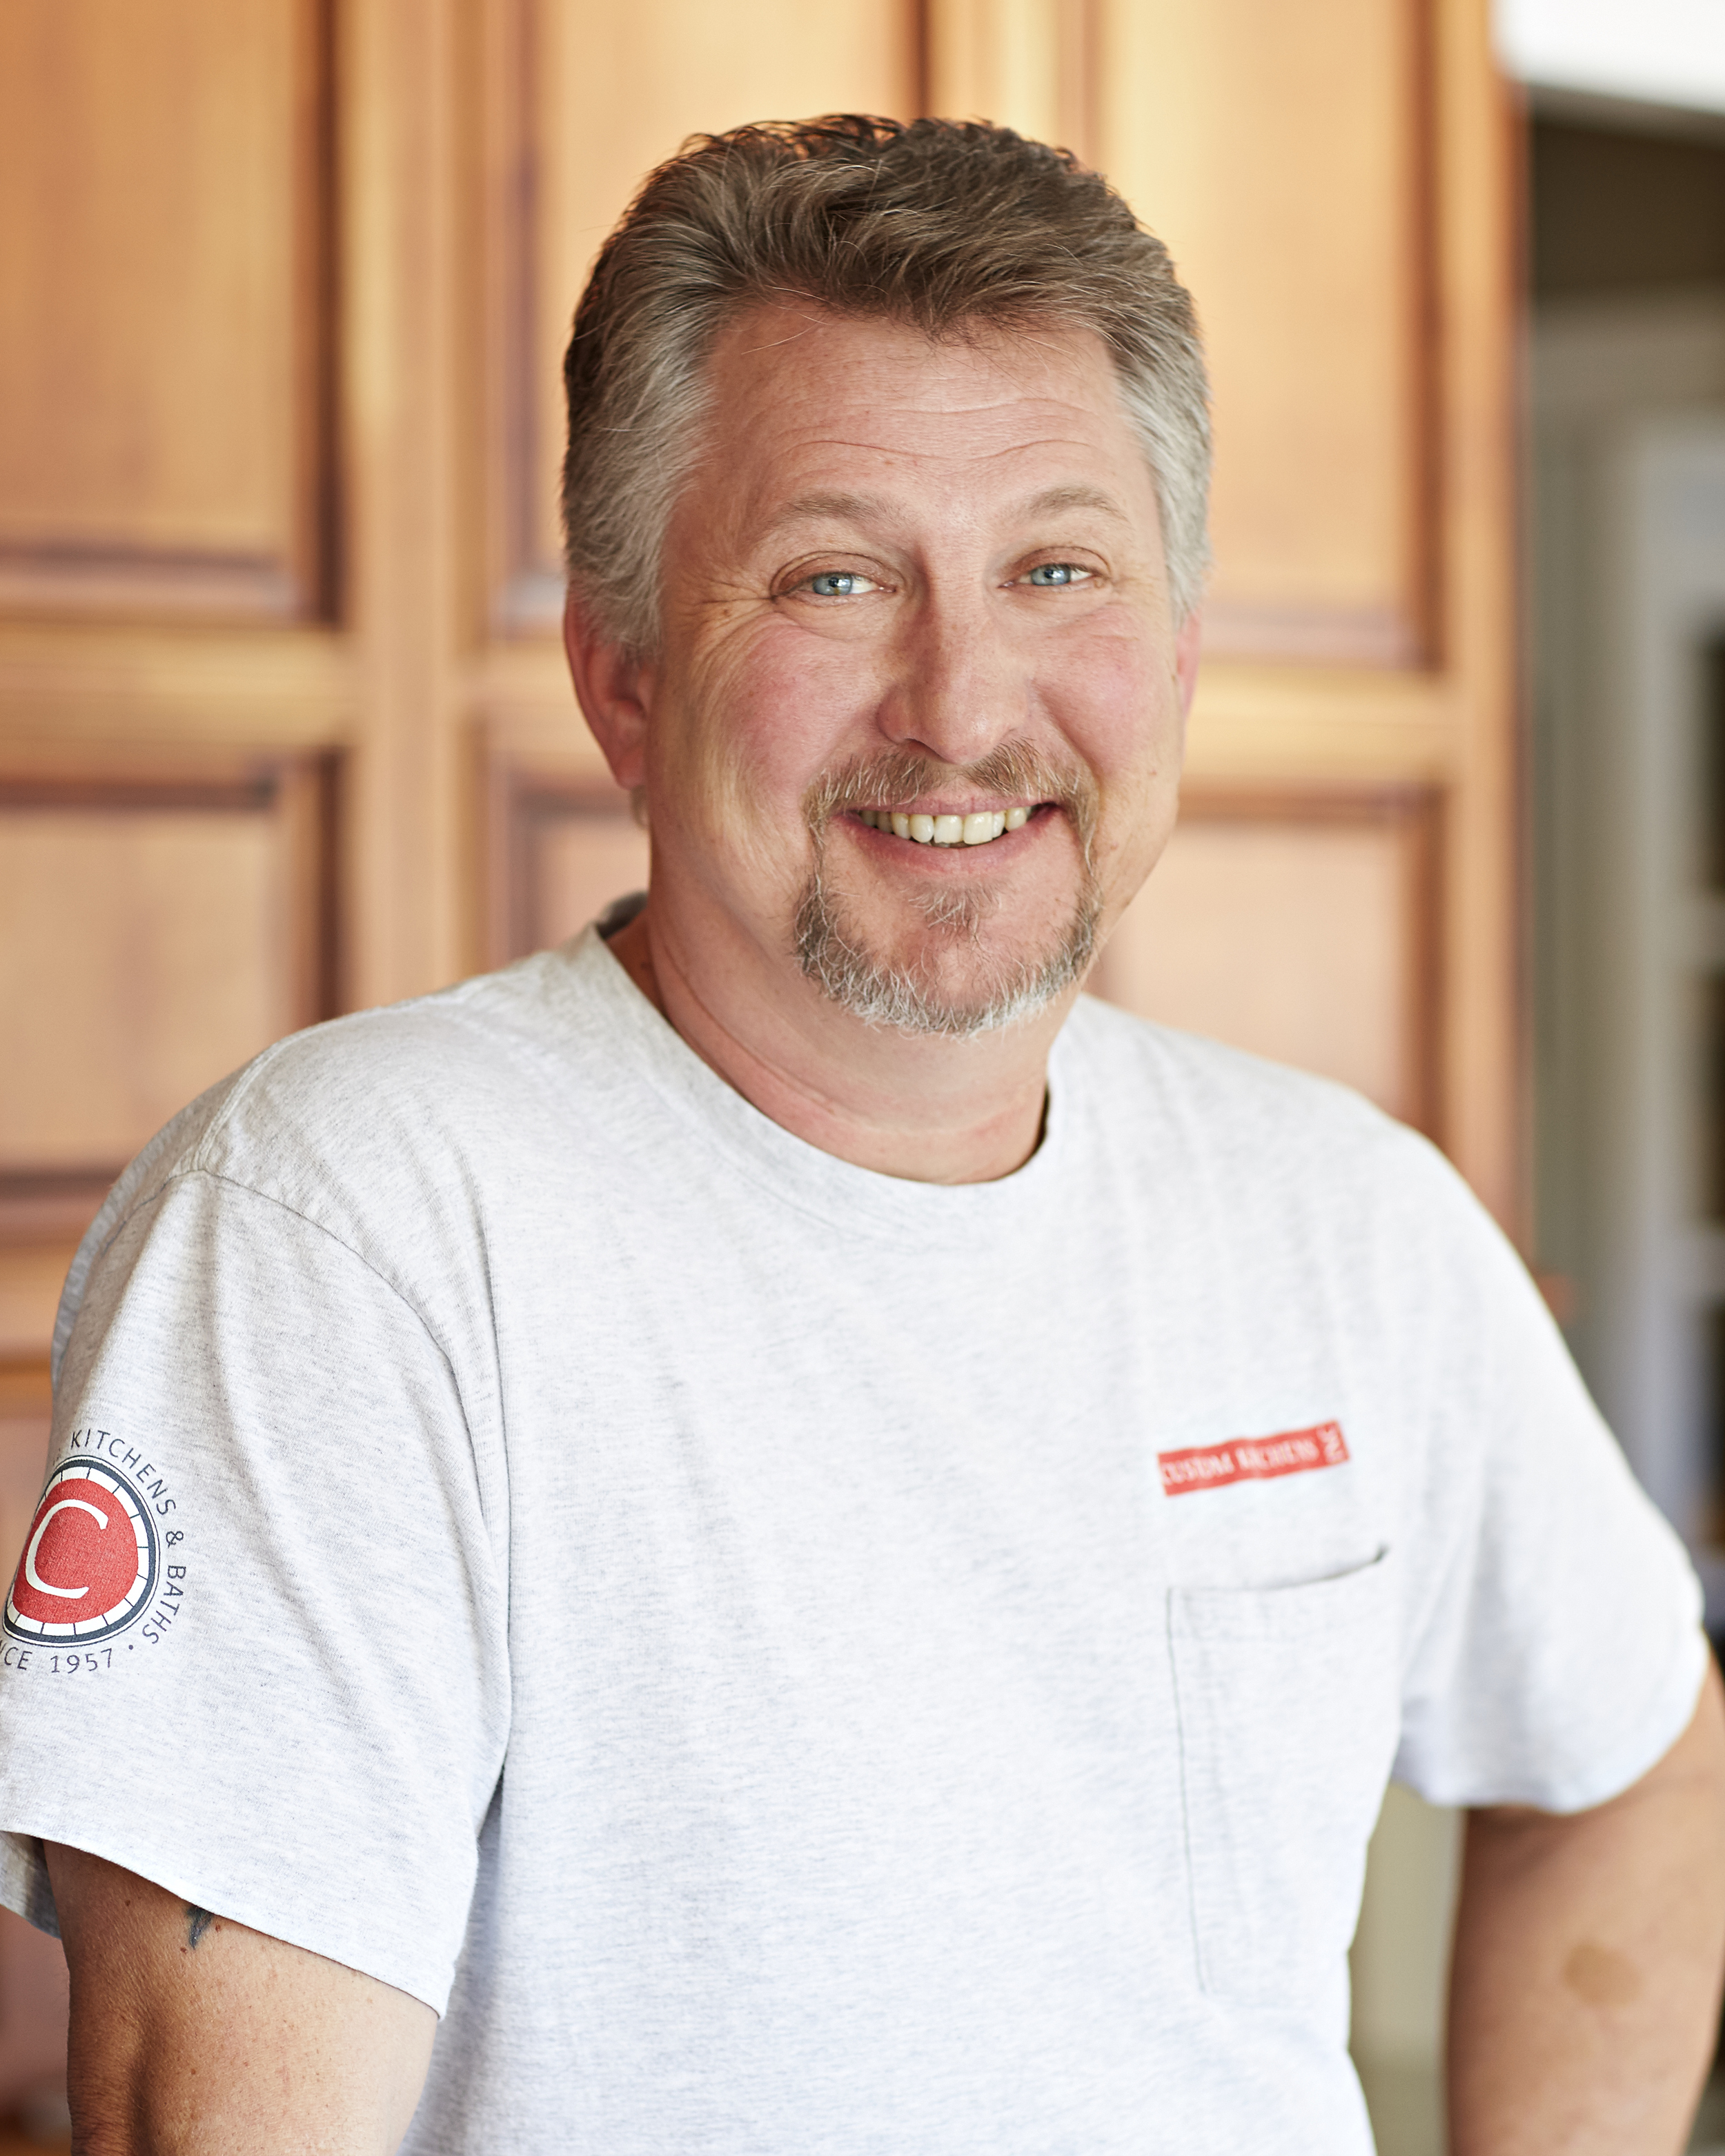 James (J.T.) Hall  Cabinet Installer  James has been expertly installing cabinets and trim for 30 years. He loves the crisp, clean lines of a finished job and the personal interaction he gets to have with our clients. Outside of work he plays and sings in his church's praise band and choir and is the frontman of a local band.